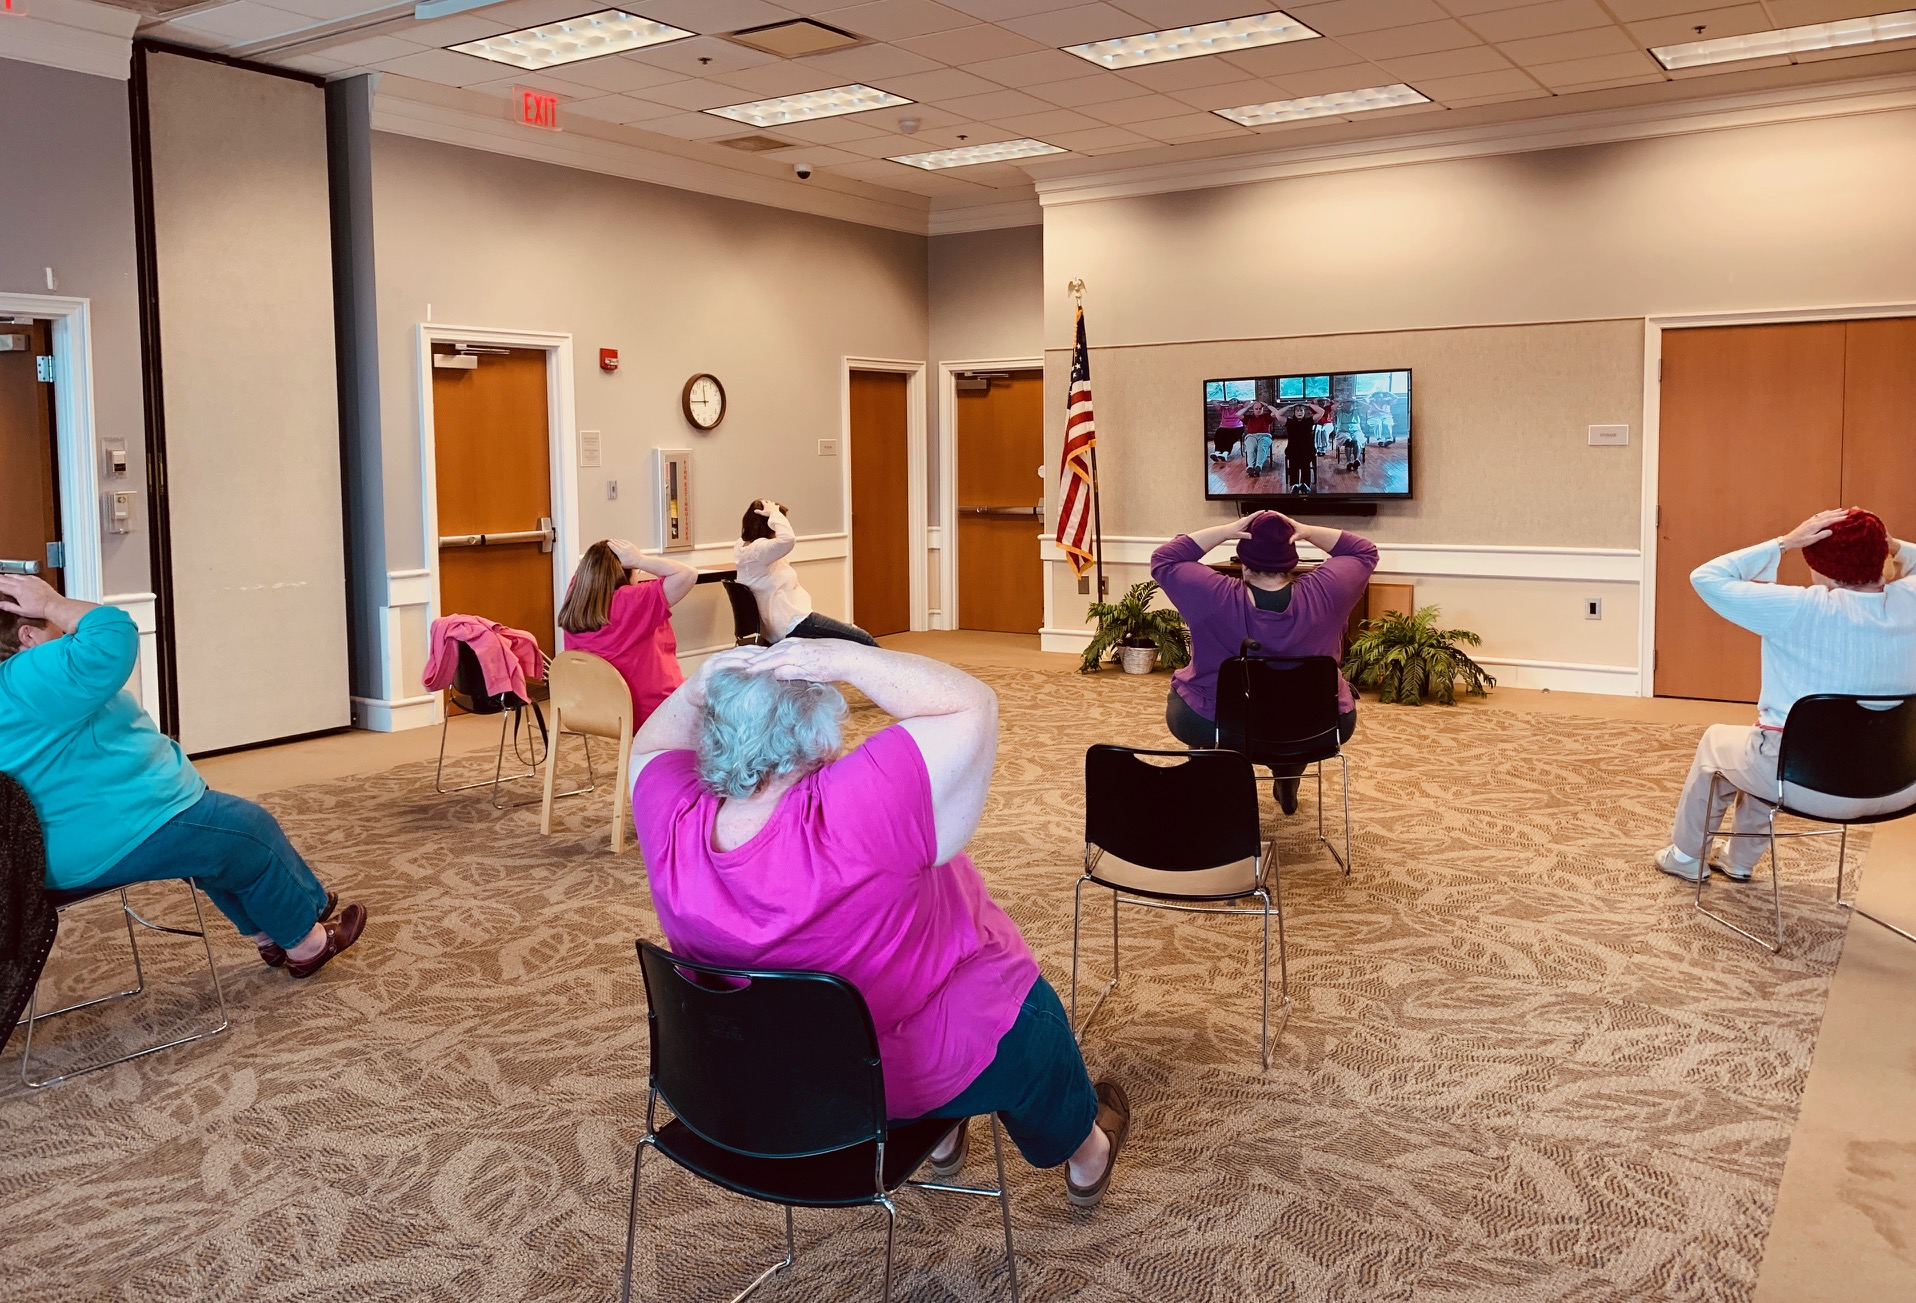 [GPL] E-Z Exercise - Stretching @ Galax Branch